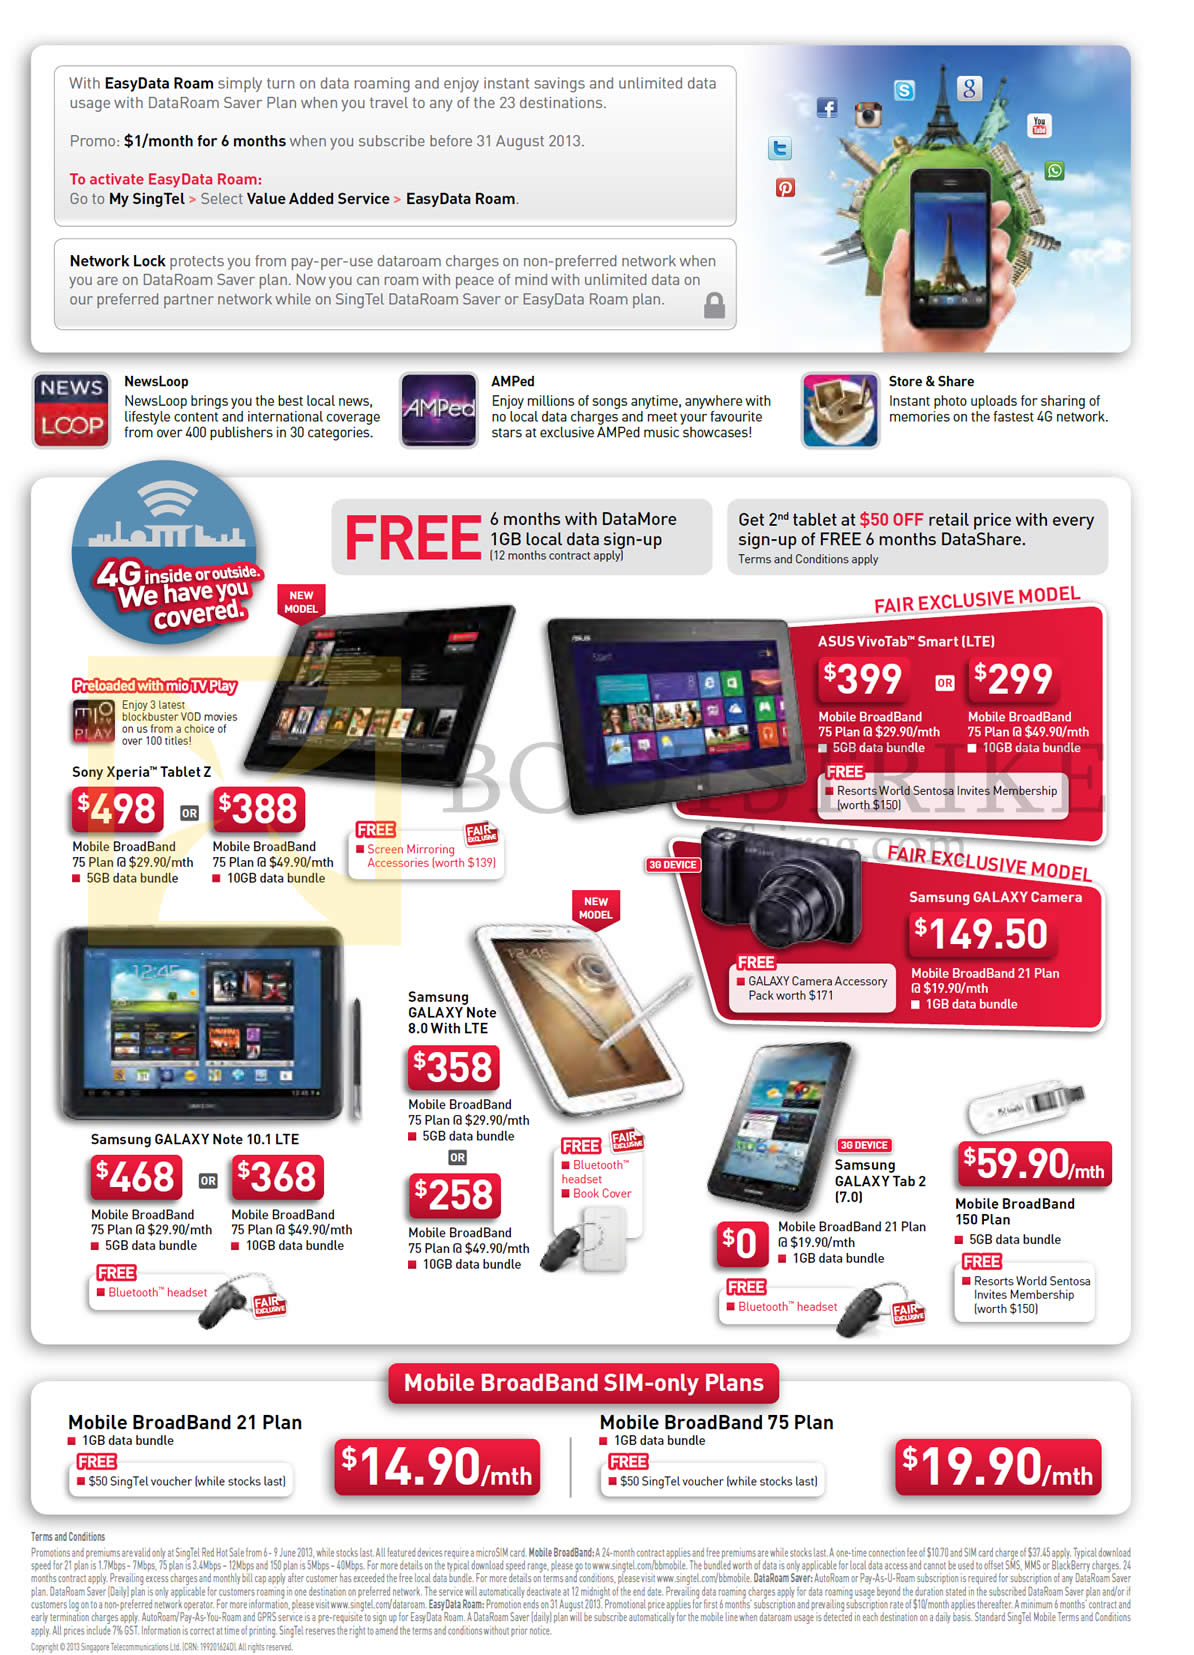 PC SHOW 2013 price list image brochure of Singtel Mobile Broadband Plans, Tablets Sony Xperia Tablet Z, ASUS VivoTab Smart LTE, Samsung Galaxy Camera, Note 8.0, Note 10.1 LTE, Tab 2 7.0